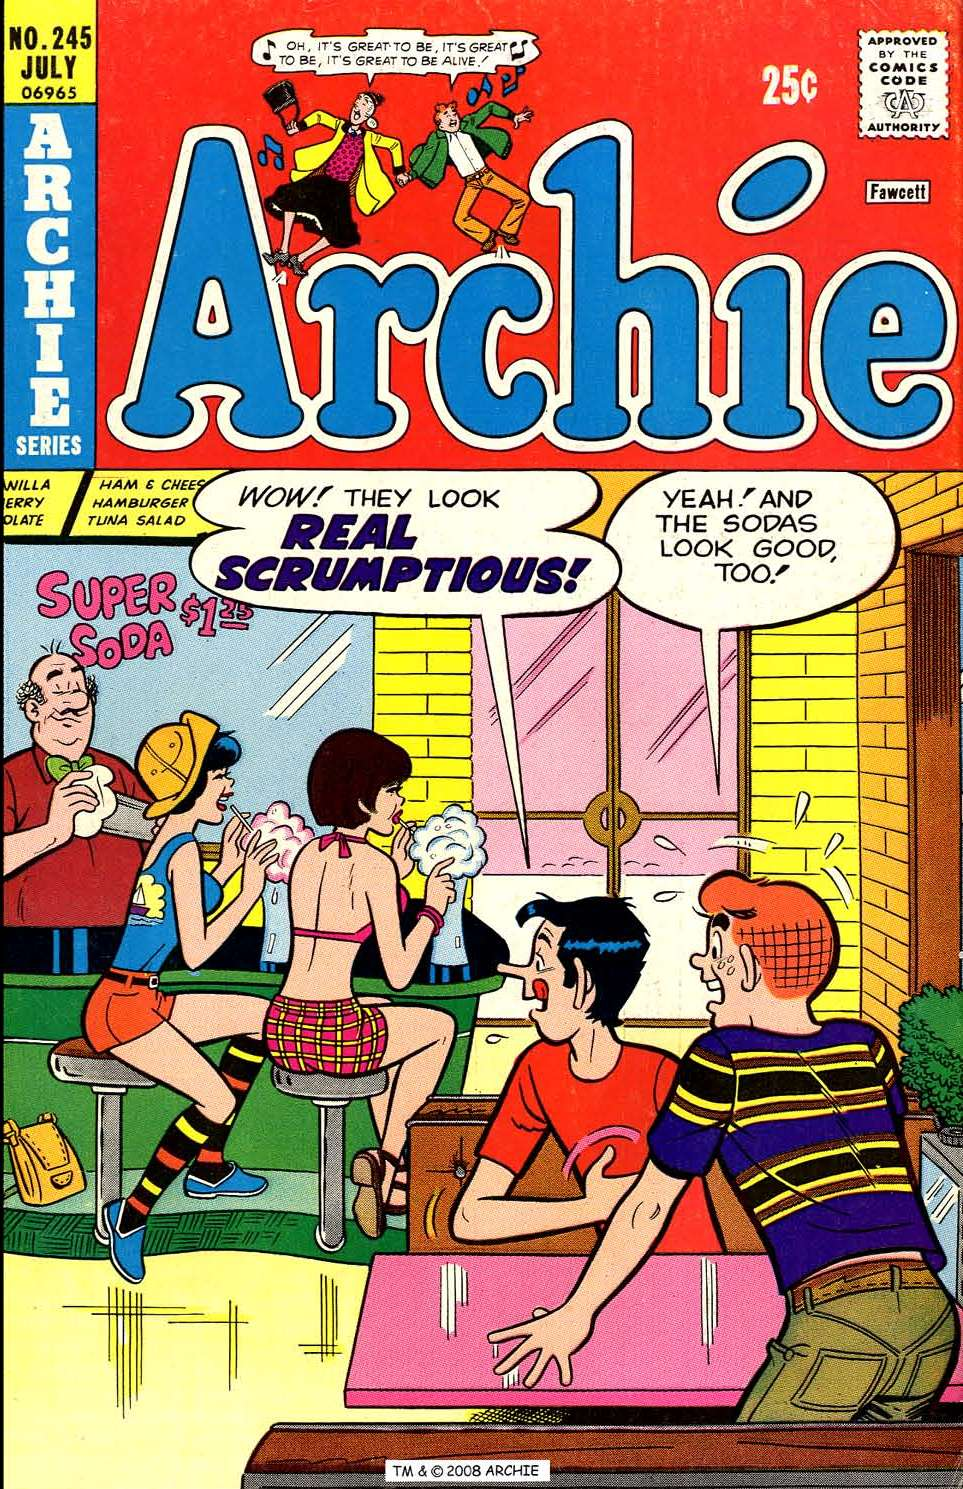 Read online Archie (1960) comic -  Issue #245 - 1